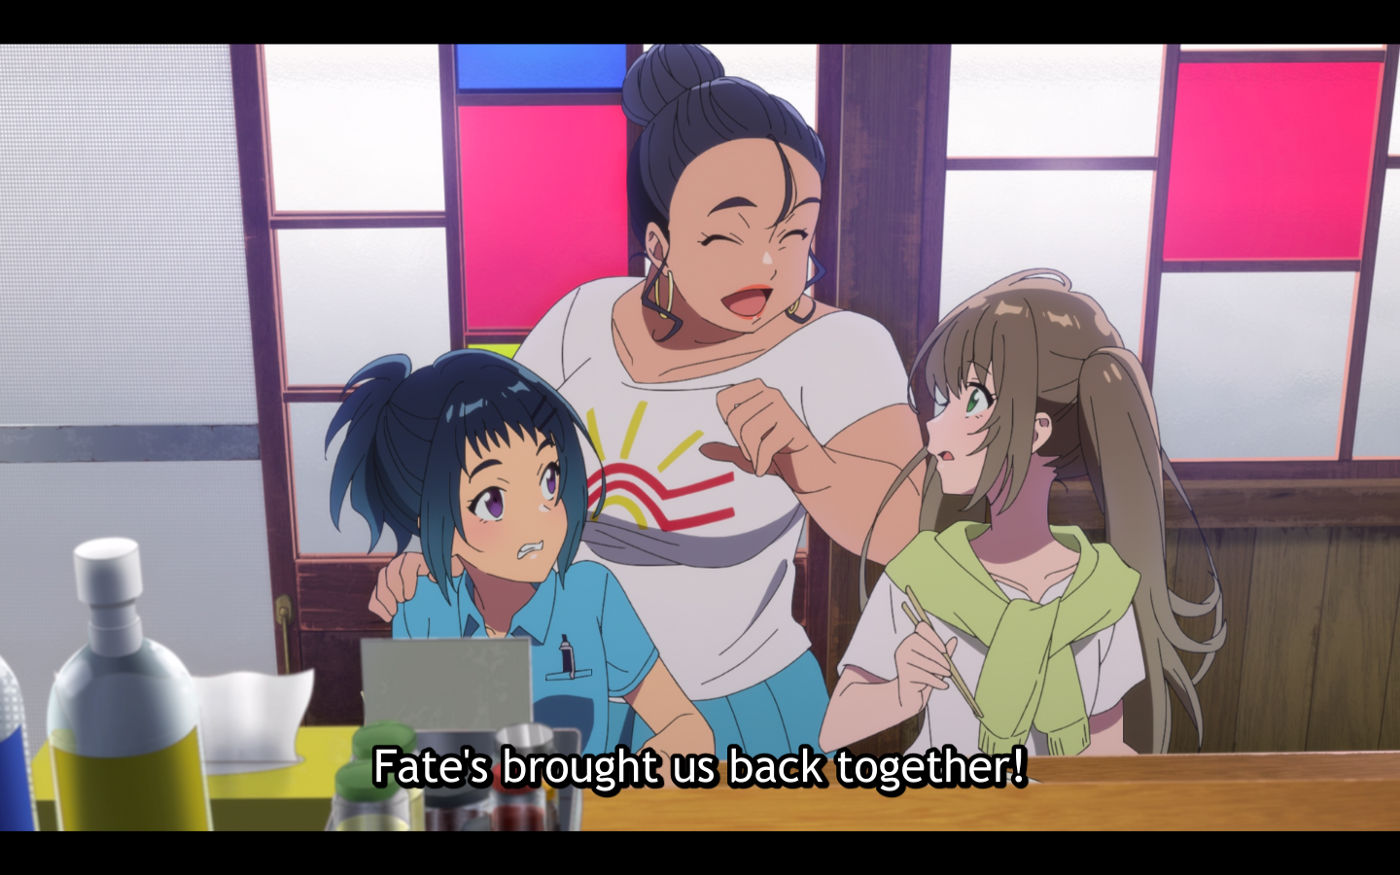 Udon-chan watches apprehensively as her mother and Fuuka reunite.